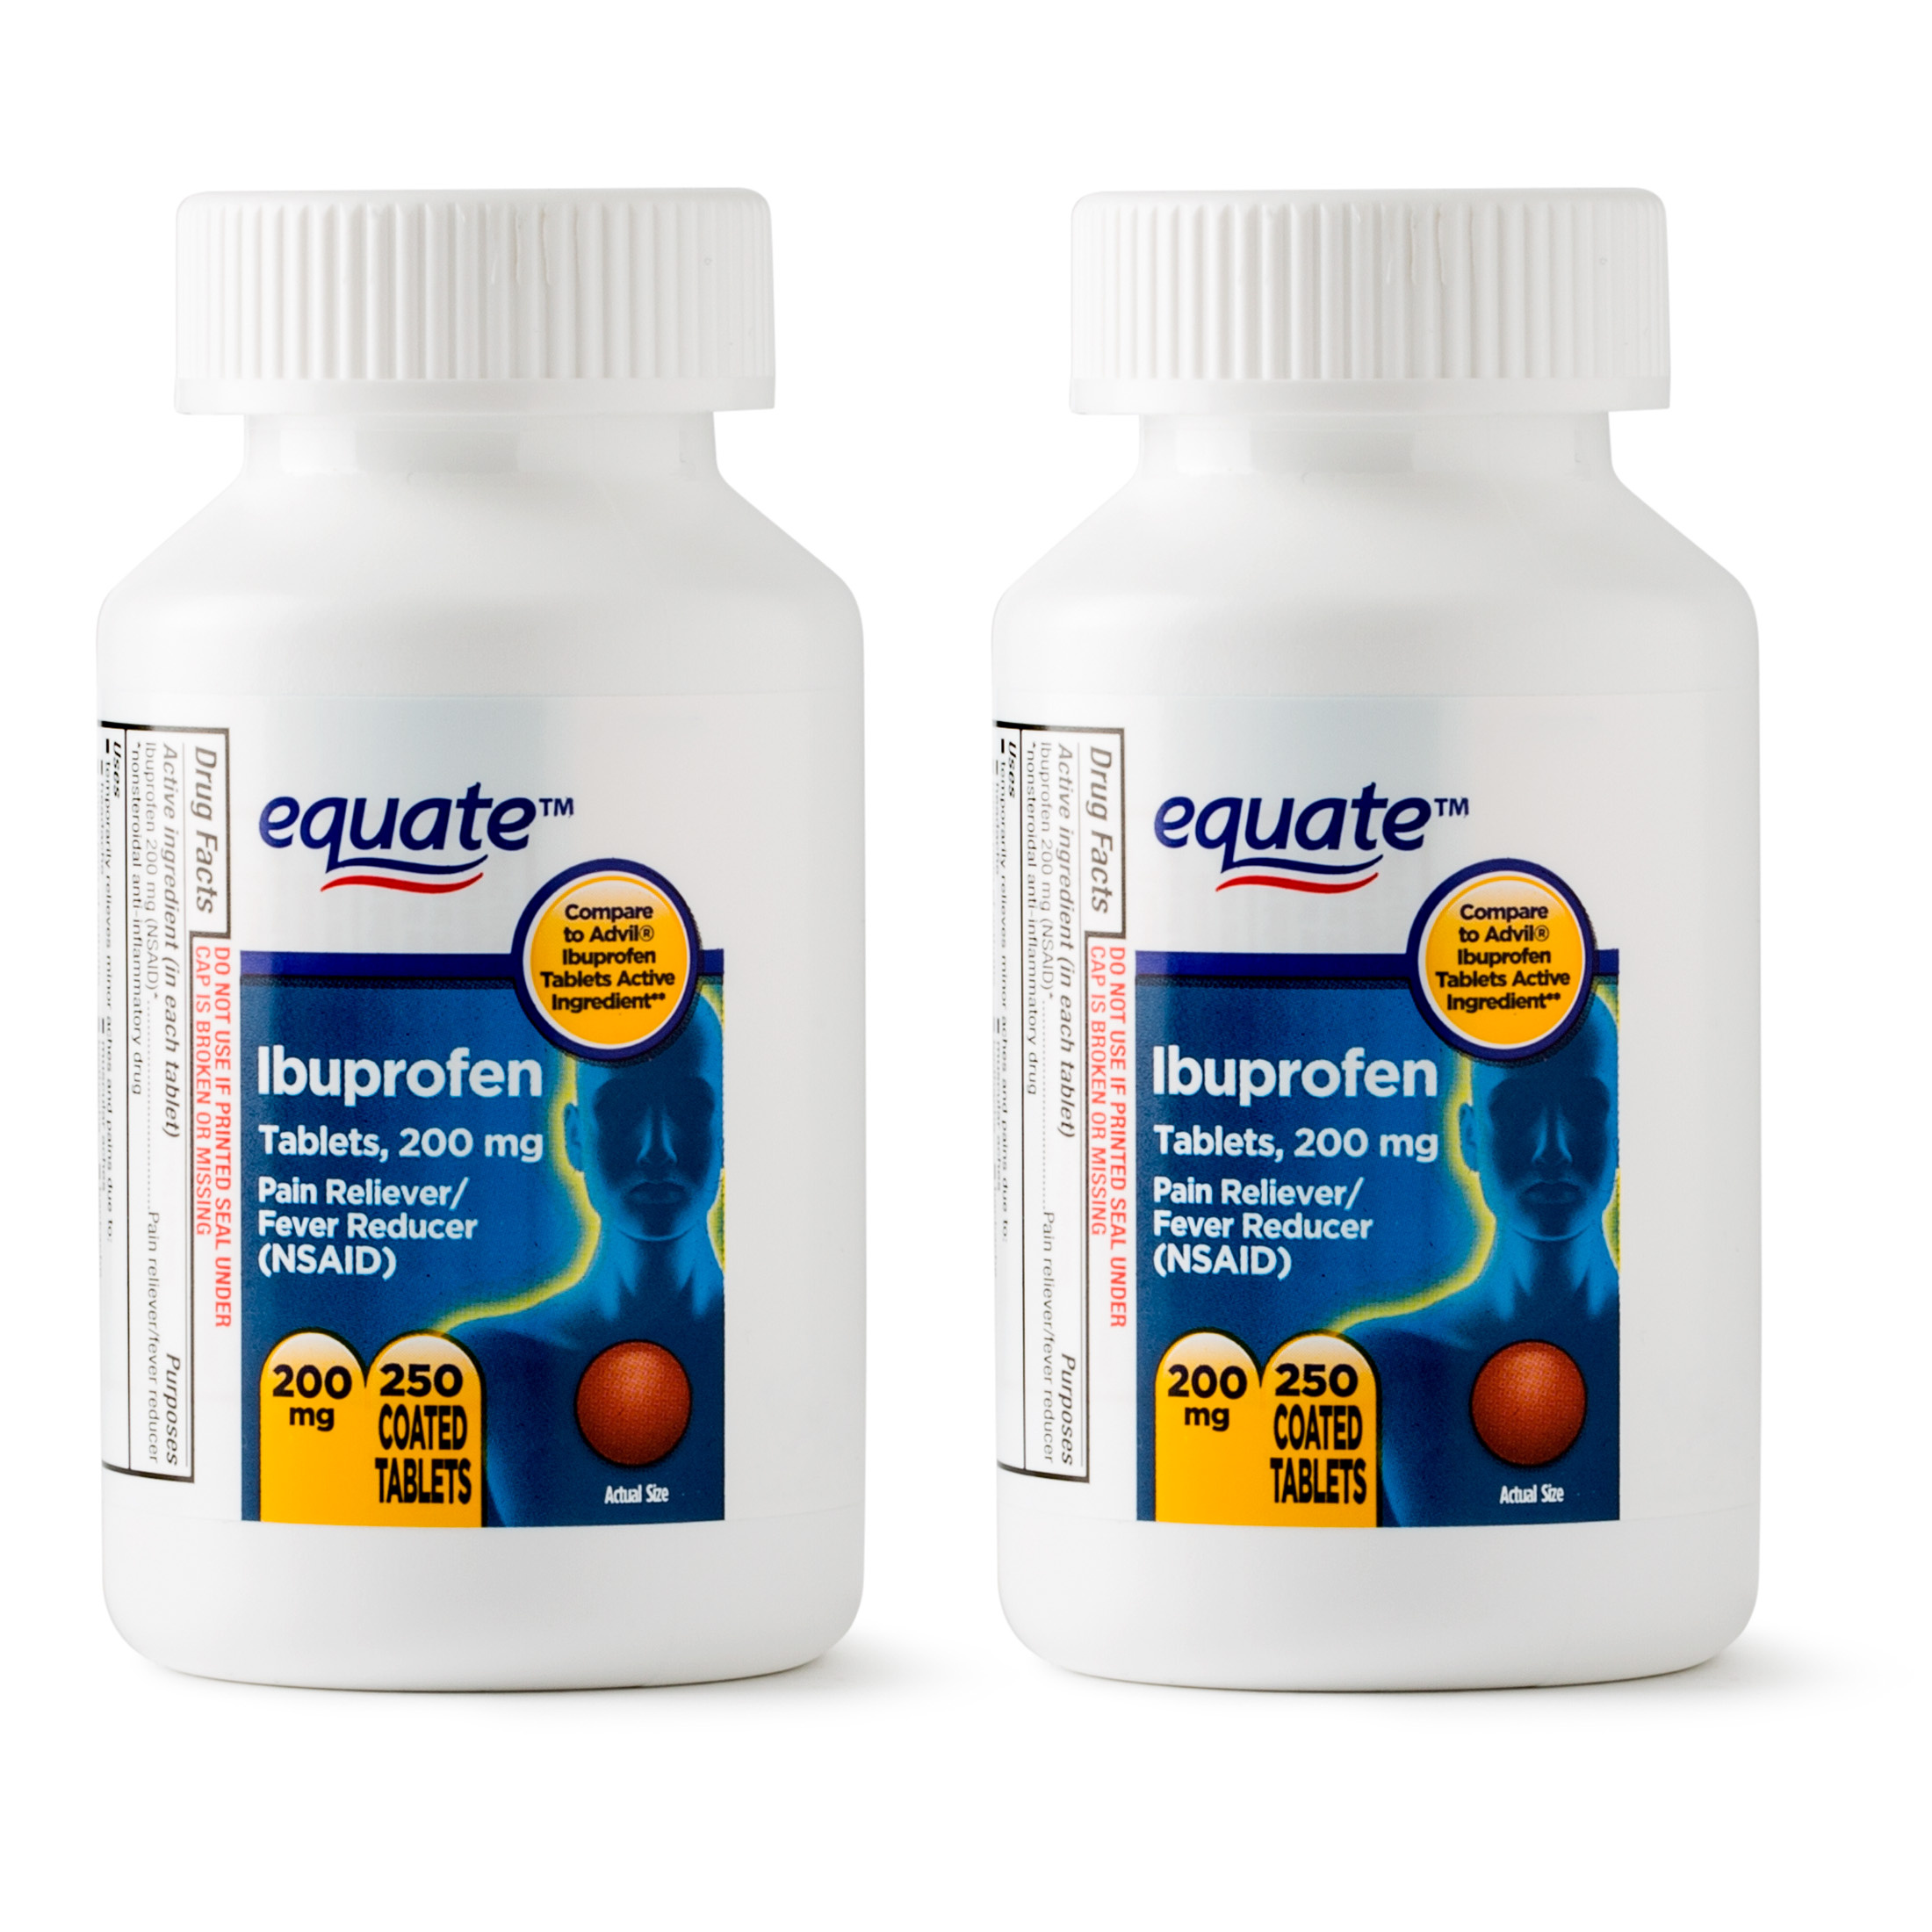 Equate Pain Relief Ibuprofen Coated Tablets, 200 mg, 250 Ct, 2 Pk -  Traveller Location